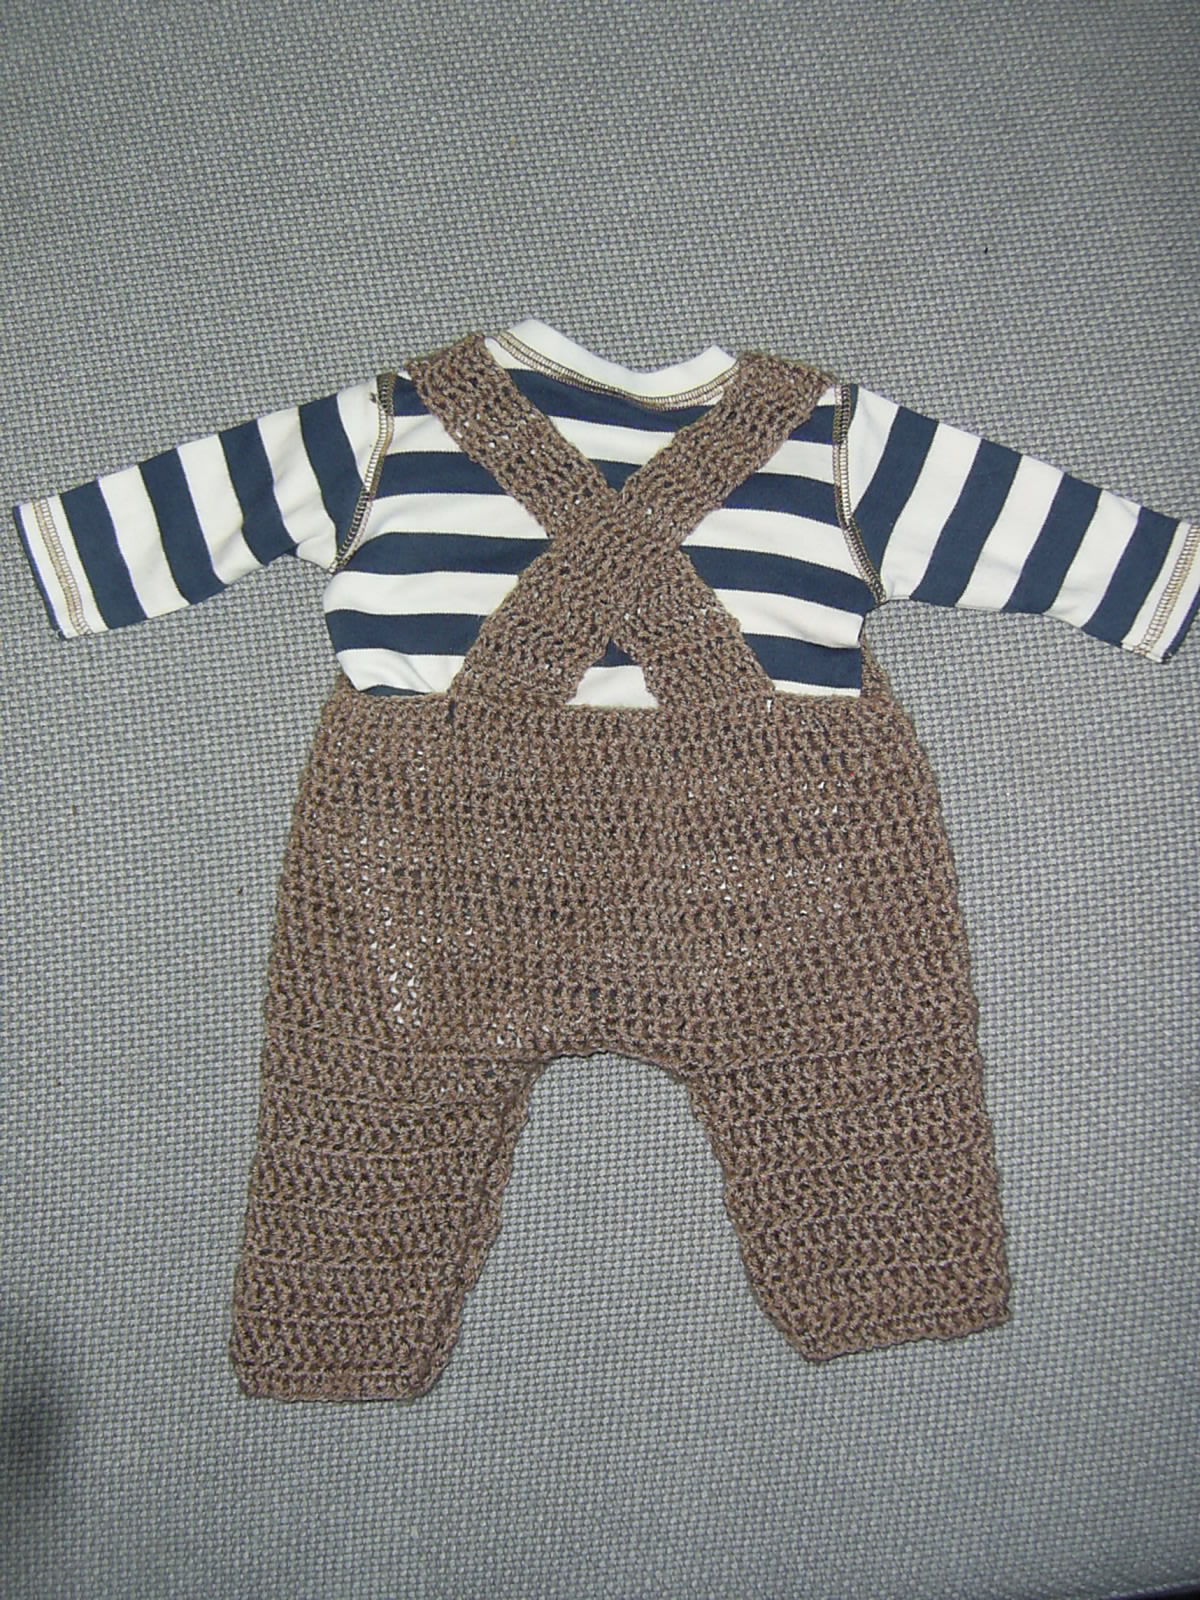 Mauv is Crafty: Crochet dungarees - free pattern!